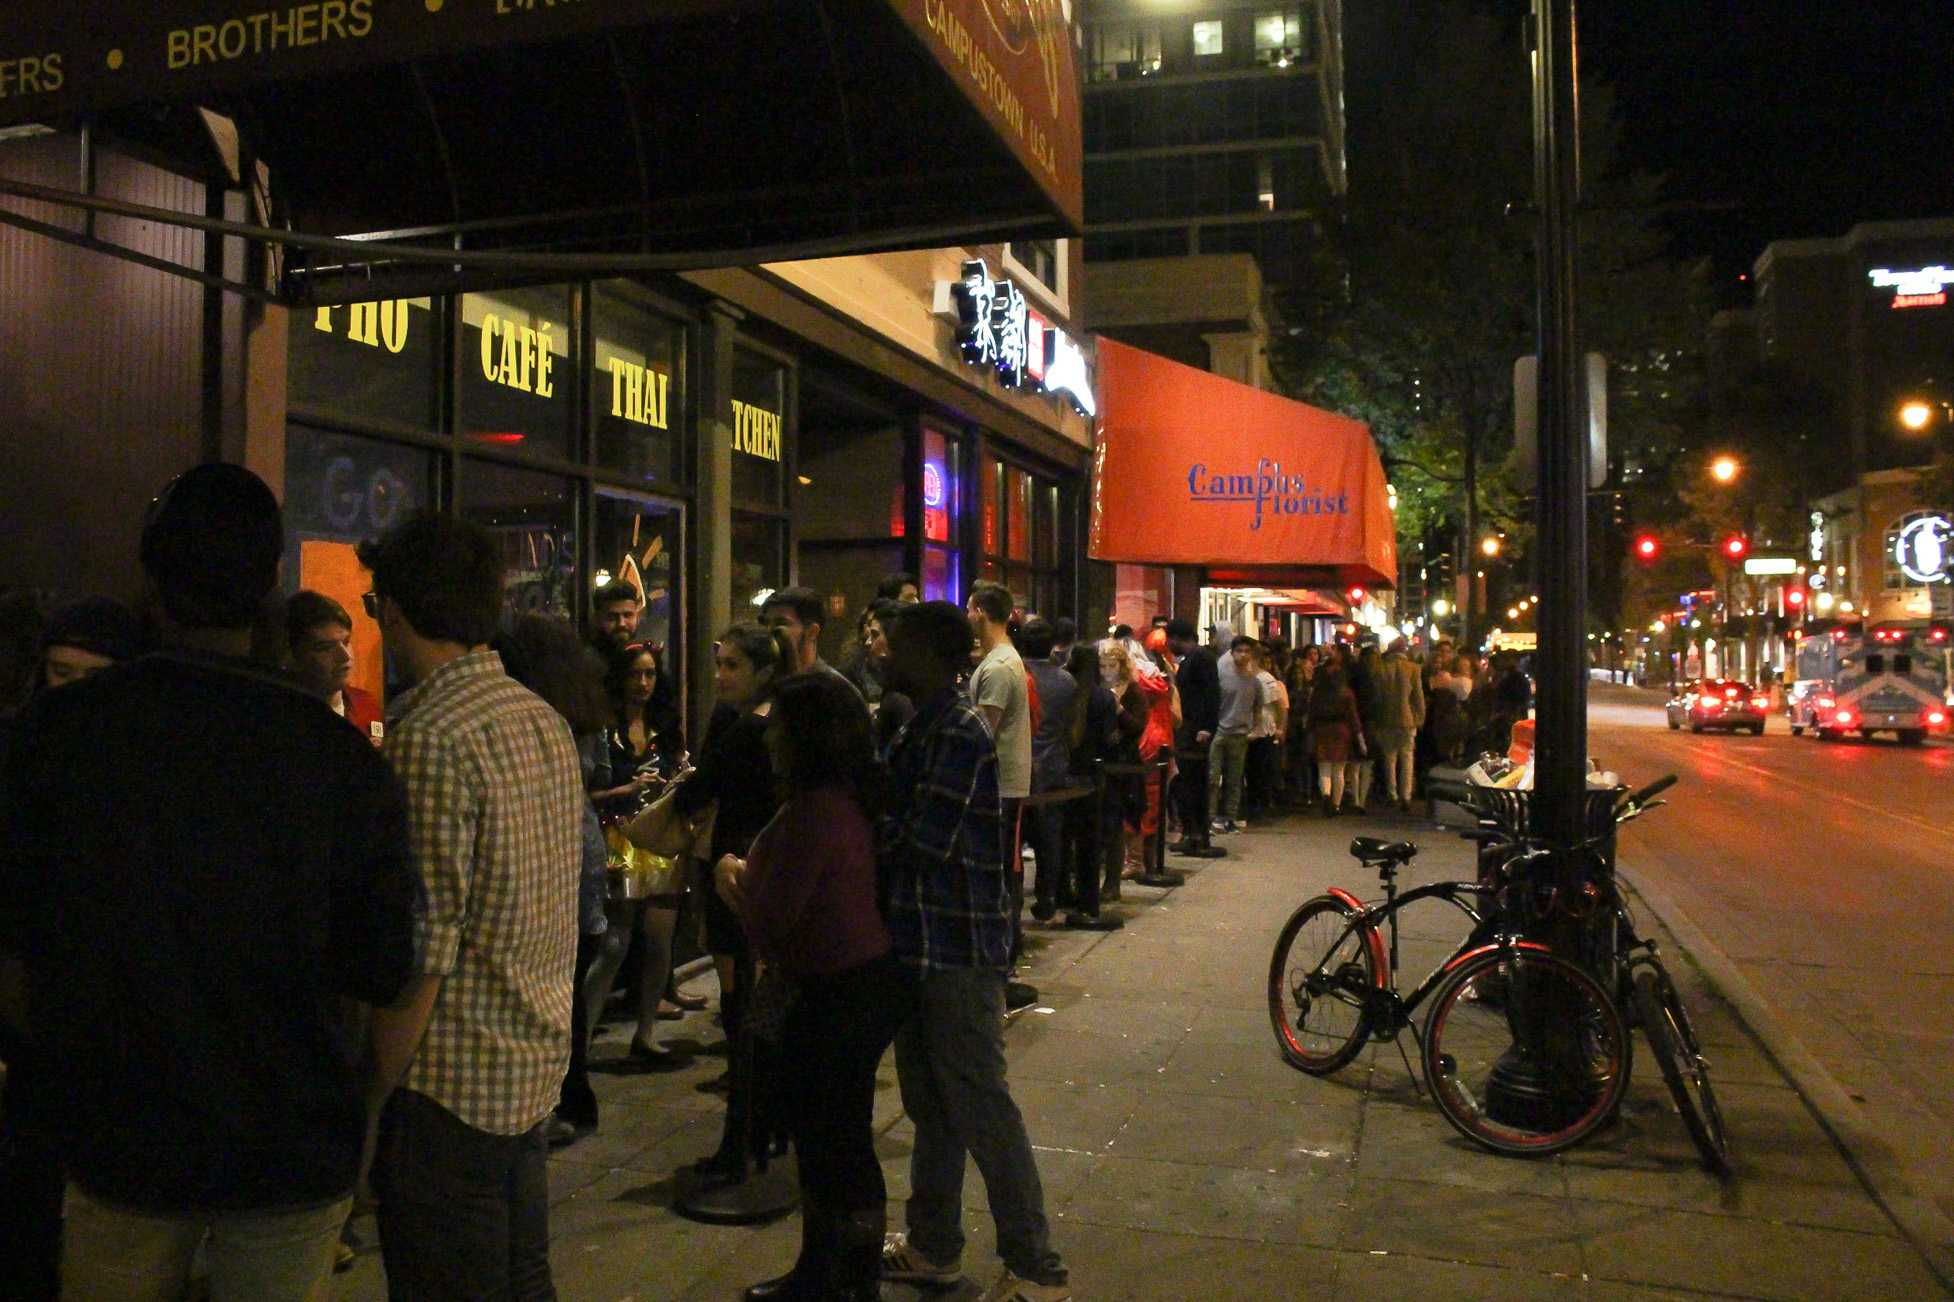 Themed trivia nights hosted at Brothers Bar and Grill every month are a huge hit. Students are typically willing to wait in lines half a block long to get into the bar on these nights, which University alumnus Michael Ponte began.